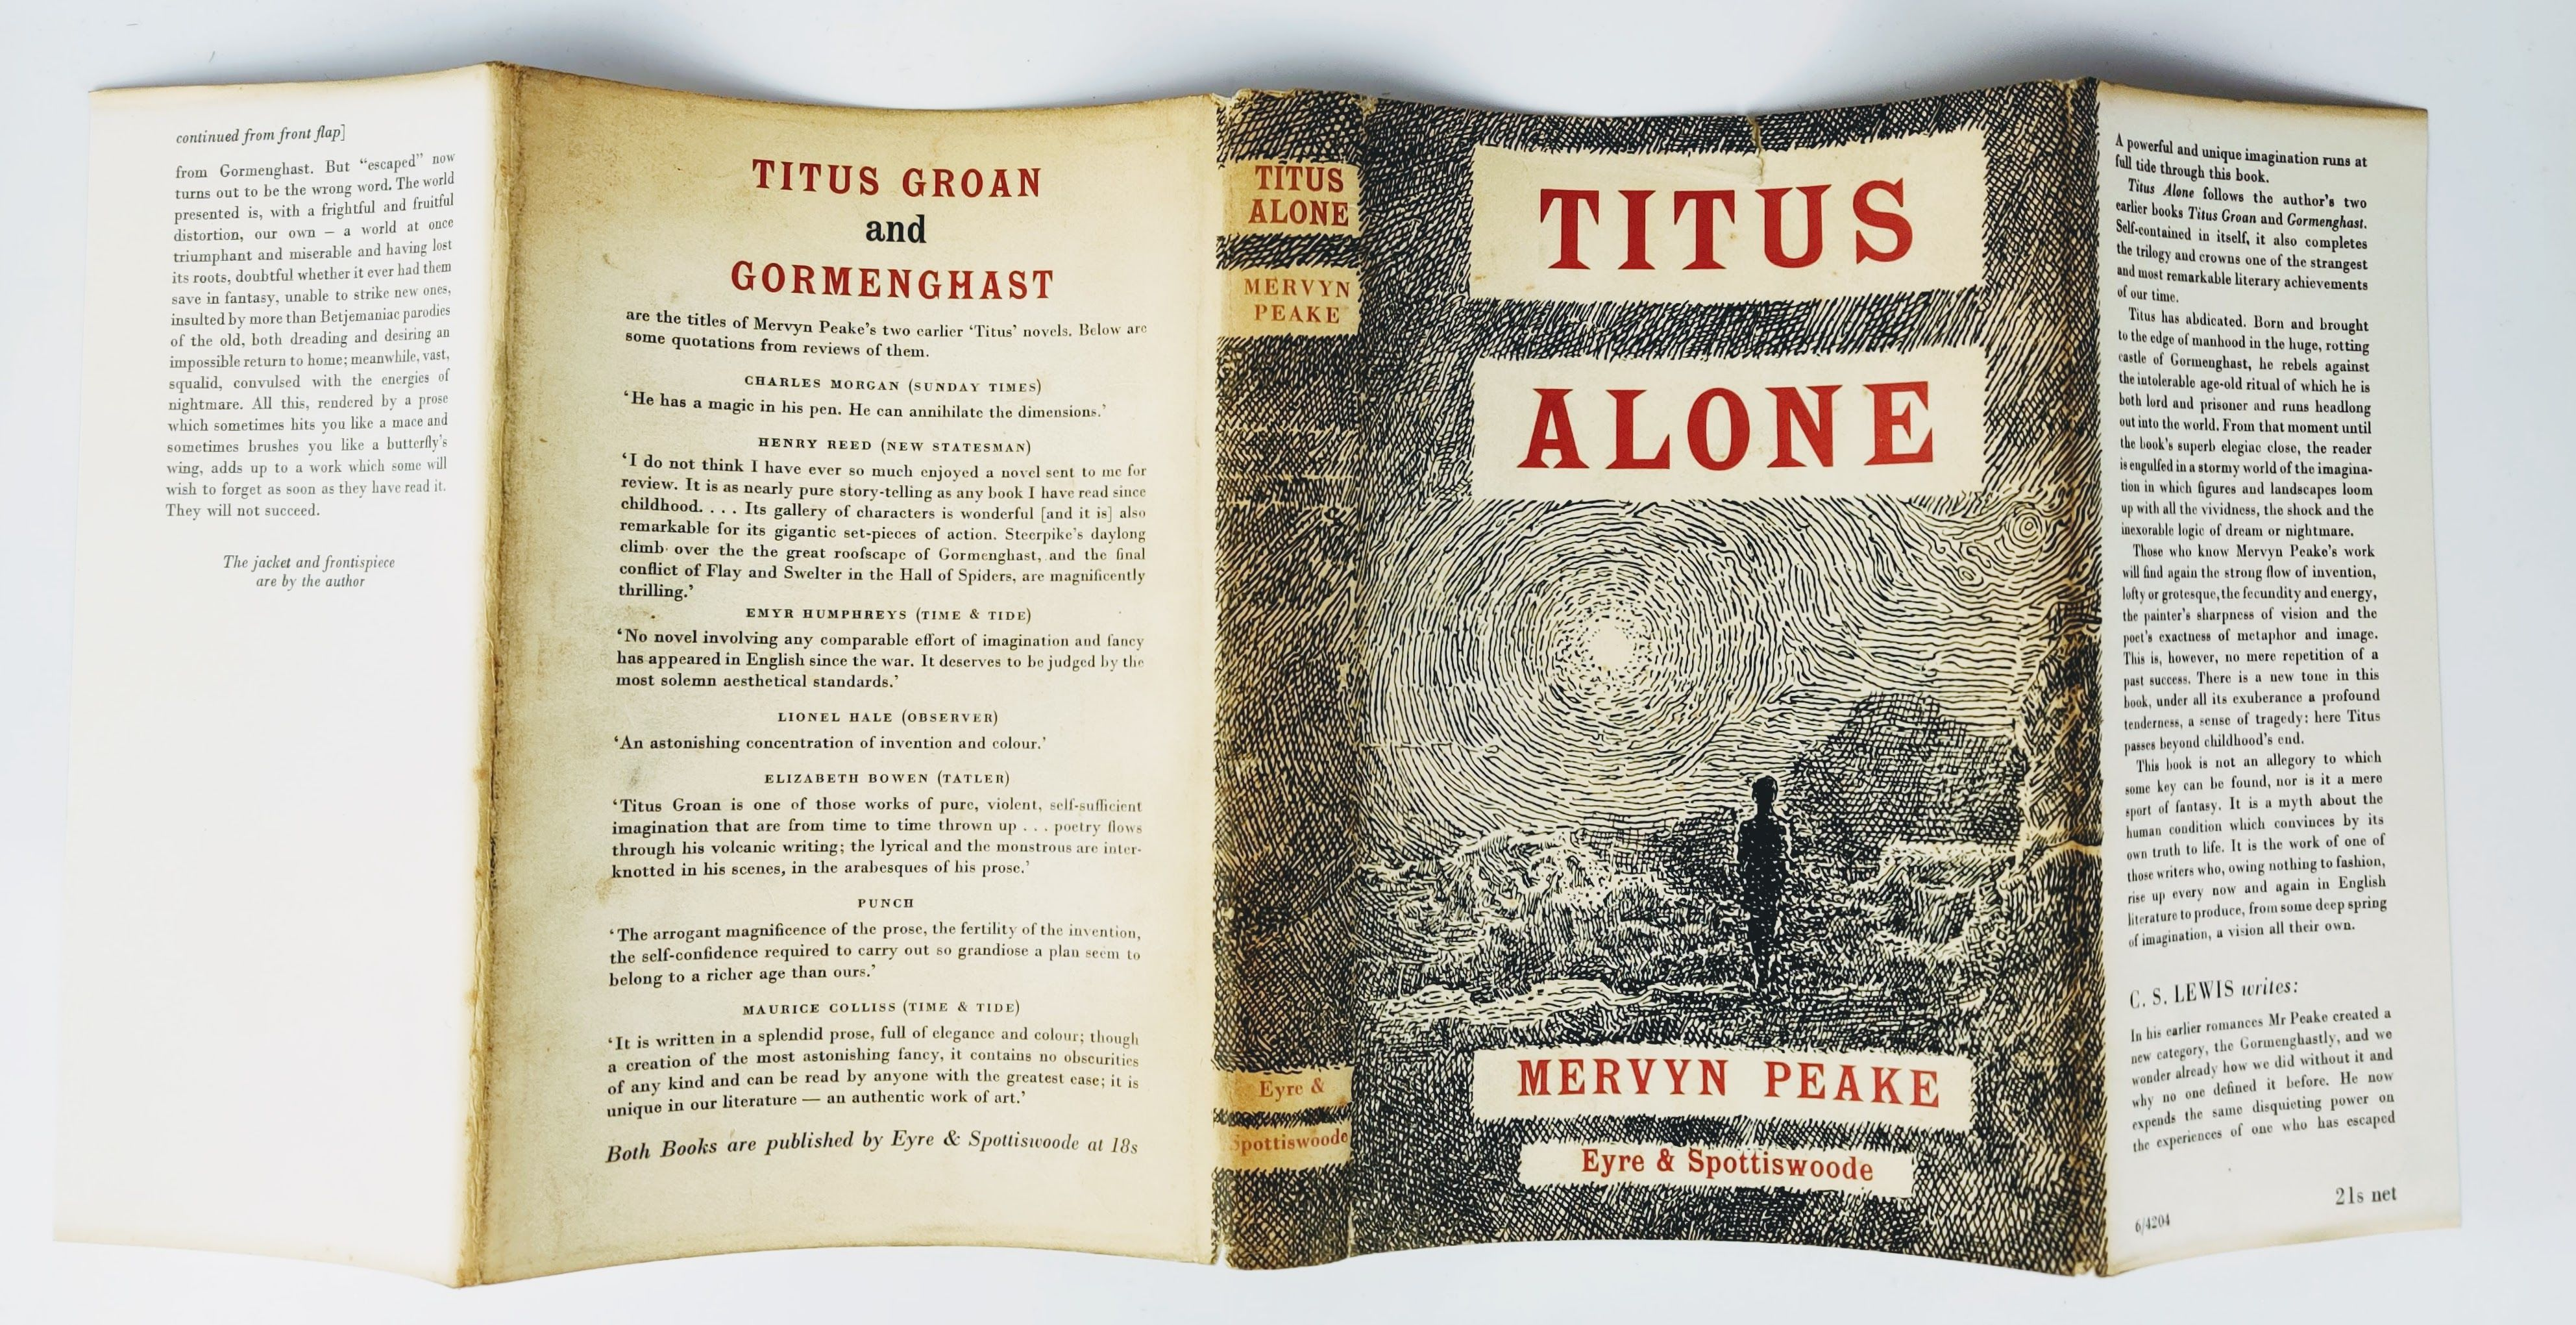 The Gormenghast Trilogy: Titus Groan, Gormenghast and Titus Alone (photo 5)